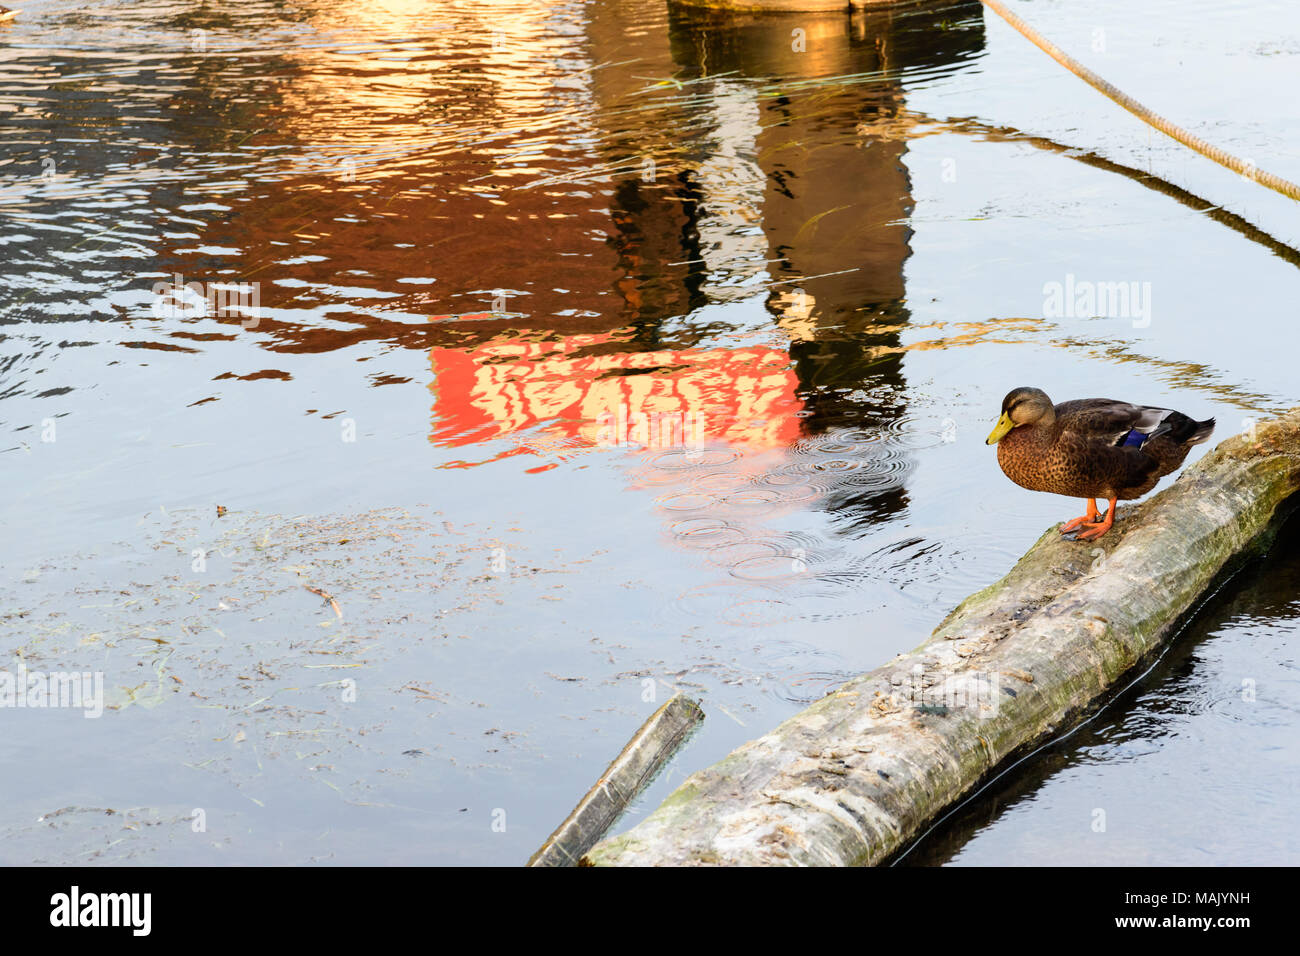 A duck resting on a log in the river Thames - Stock Image